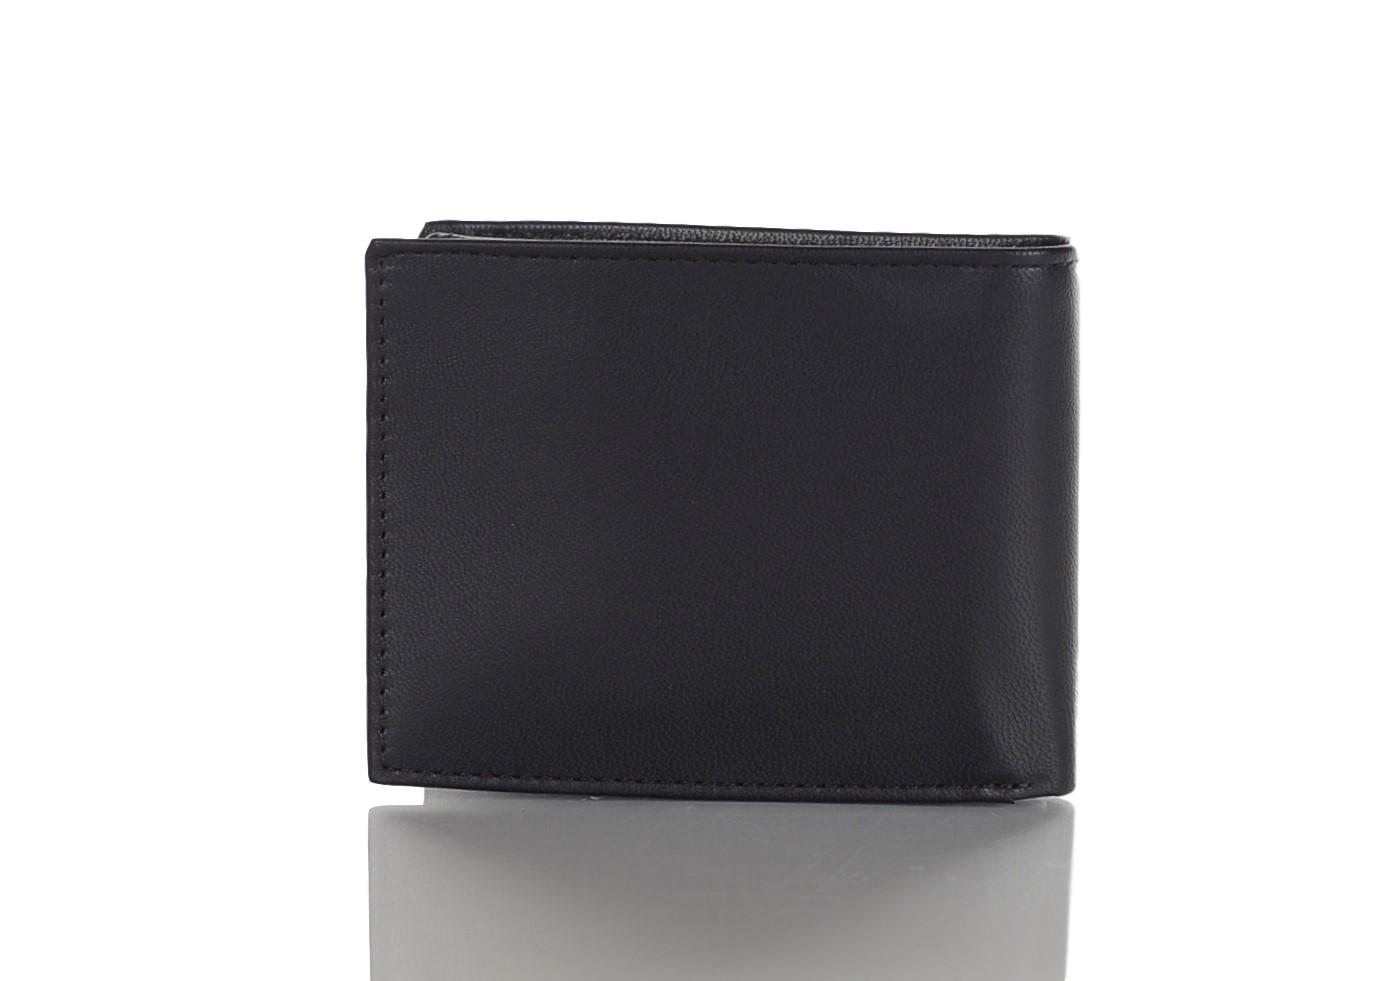 Steve-Madden-Mens-Smooth-Grain-Leather-RFID-Blocking-Passcase-Wallet thumbnail 18